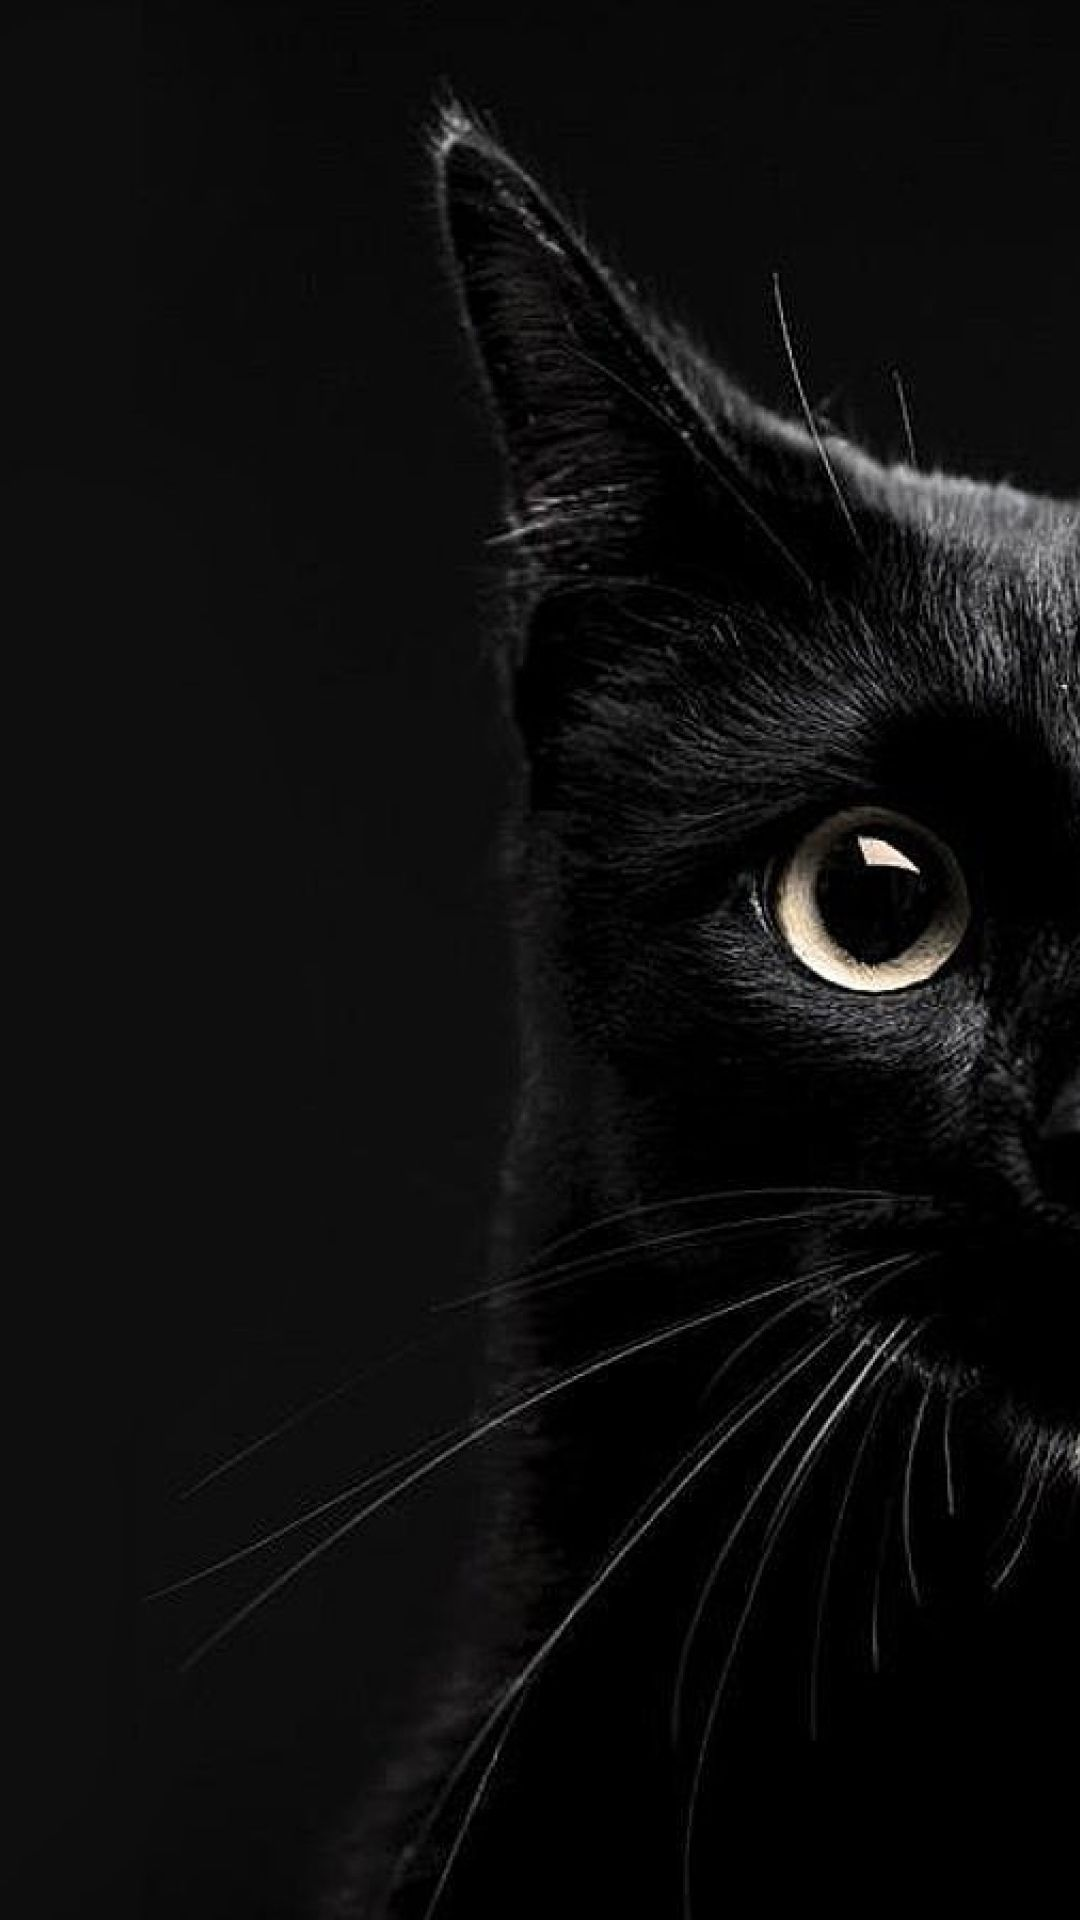 95 Cat Android Iphone Desktop Hd Backgrounds Wallpapers 1080p 4k 1080x1920 2020